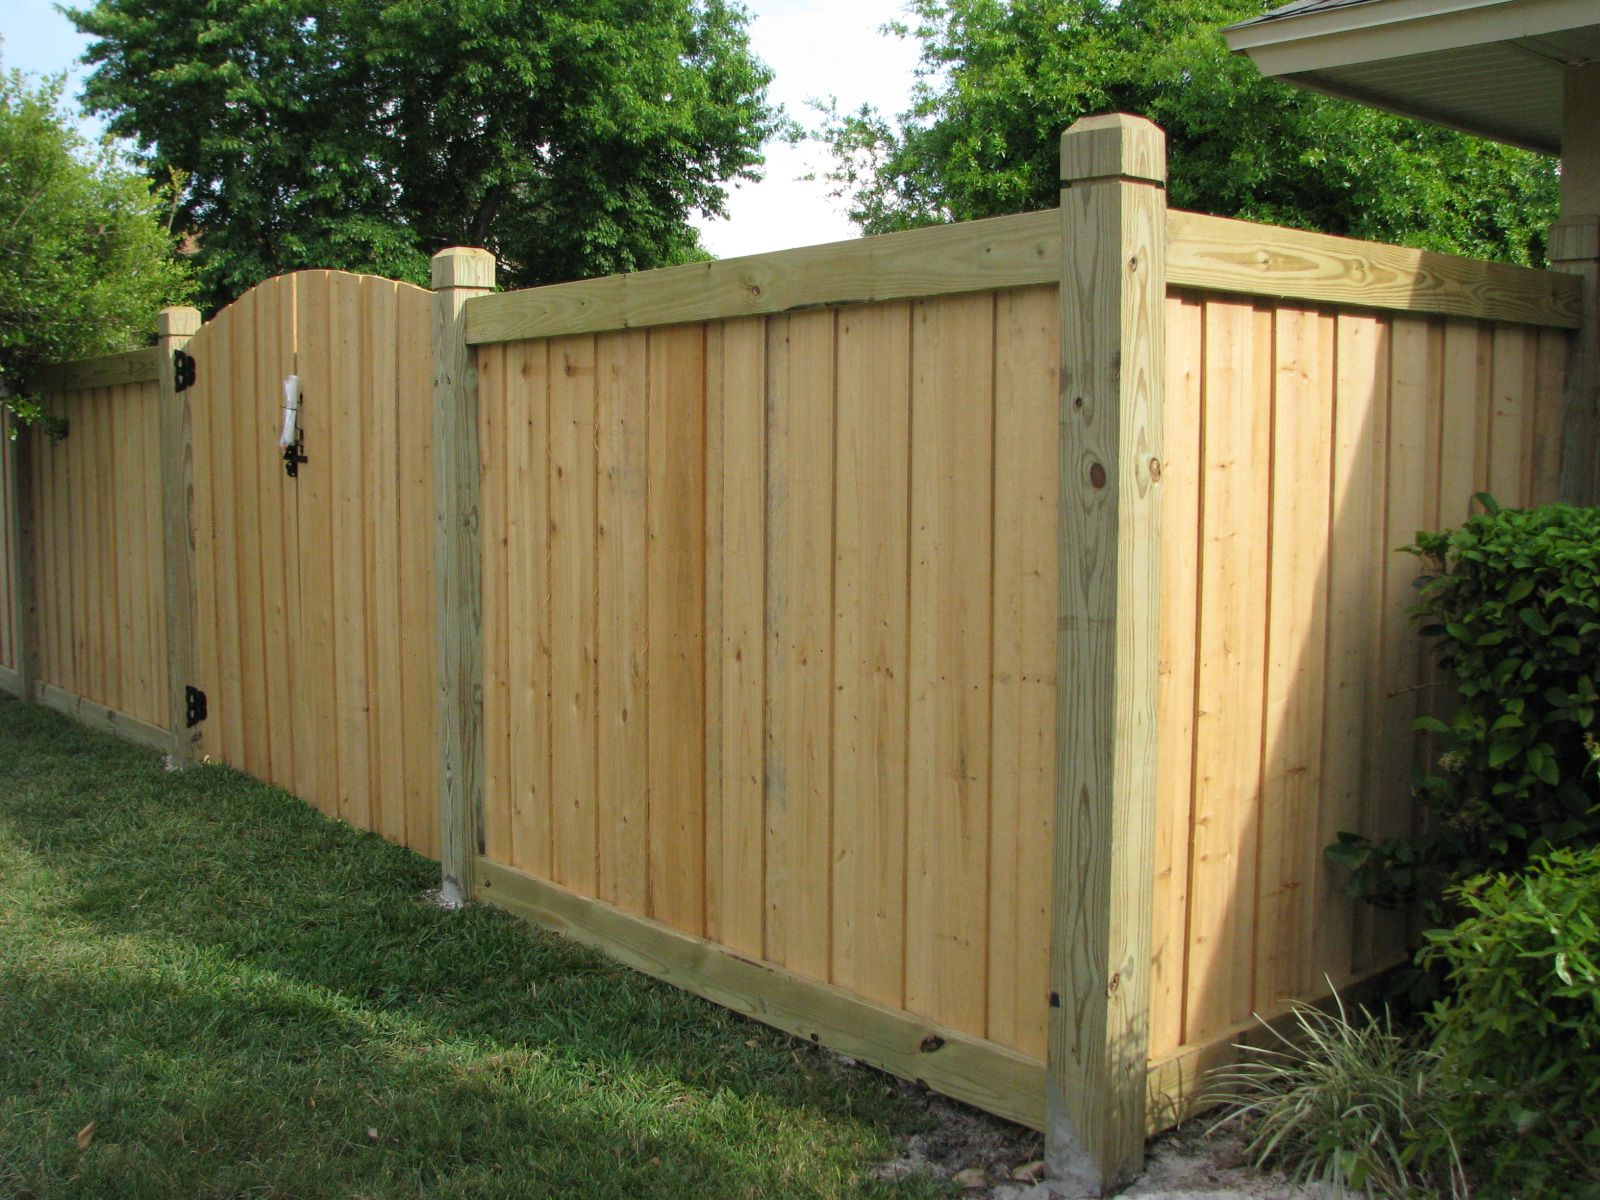 Mossy Oak Fence Home Decor Fence Design Wood Fence intended for Backyard Wood Fence Ideas